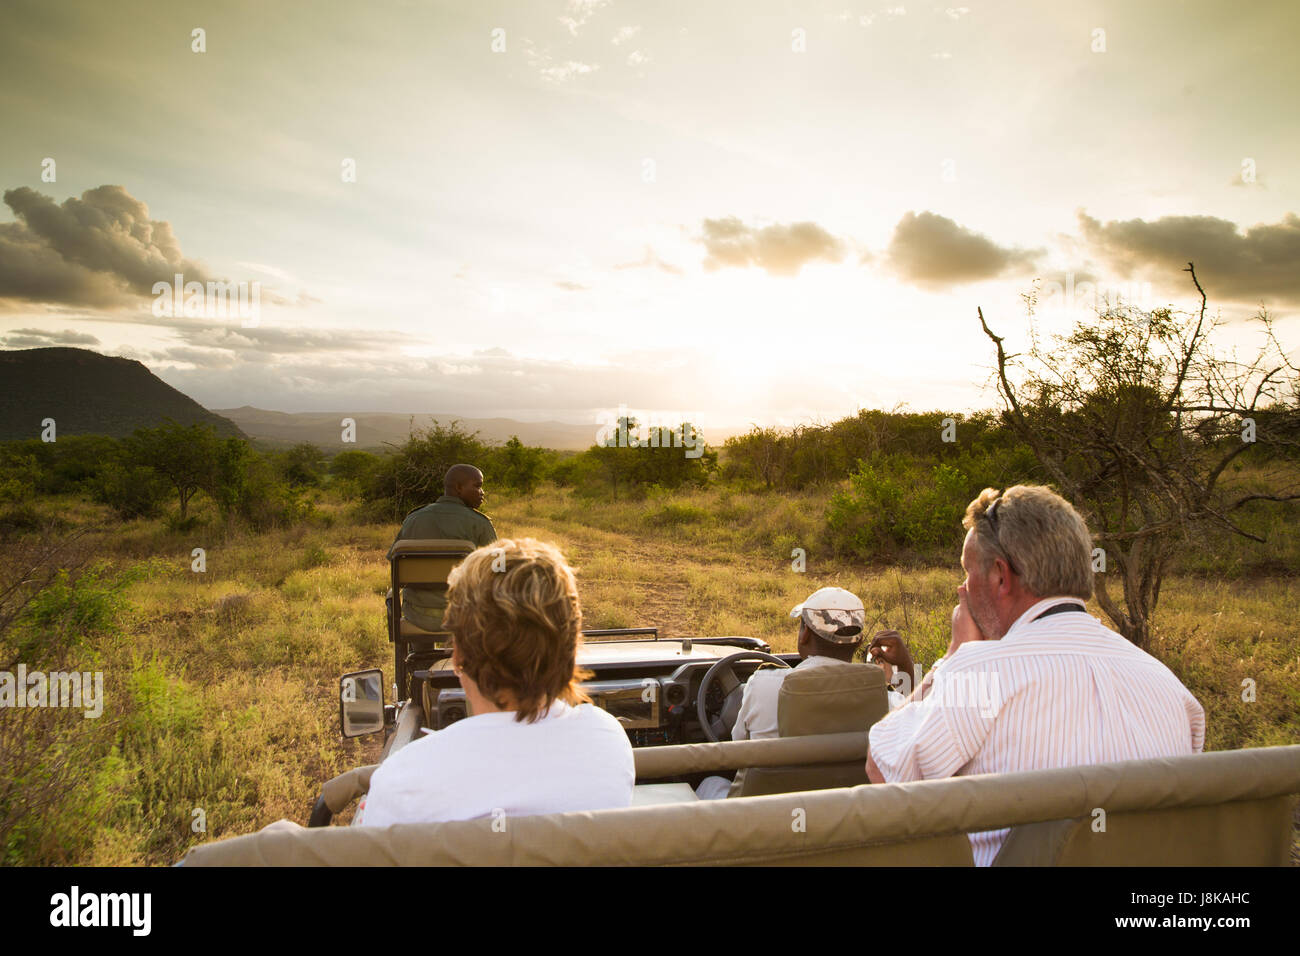 South Africa - January 15: Early morning game drive at Mkuze Falls Reserve - Stock Image